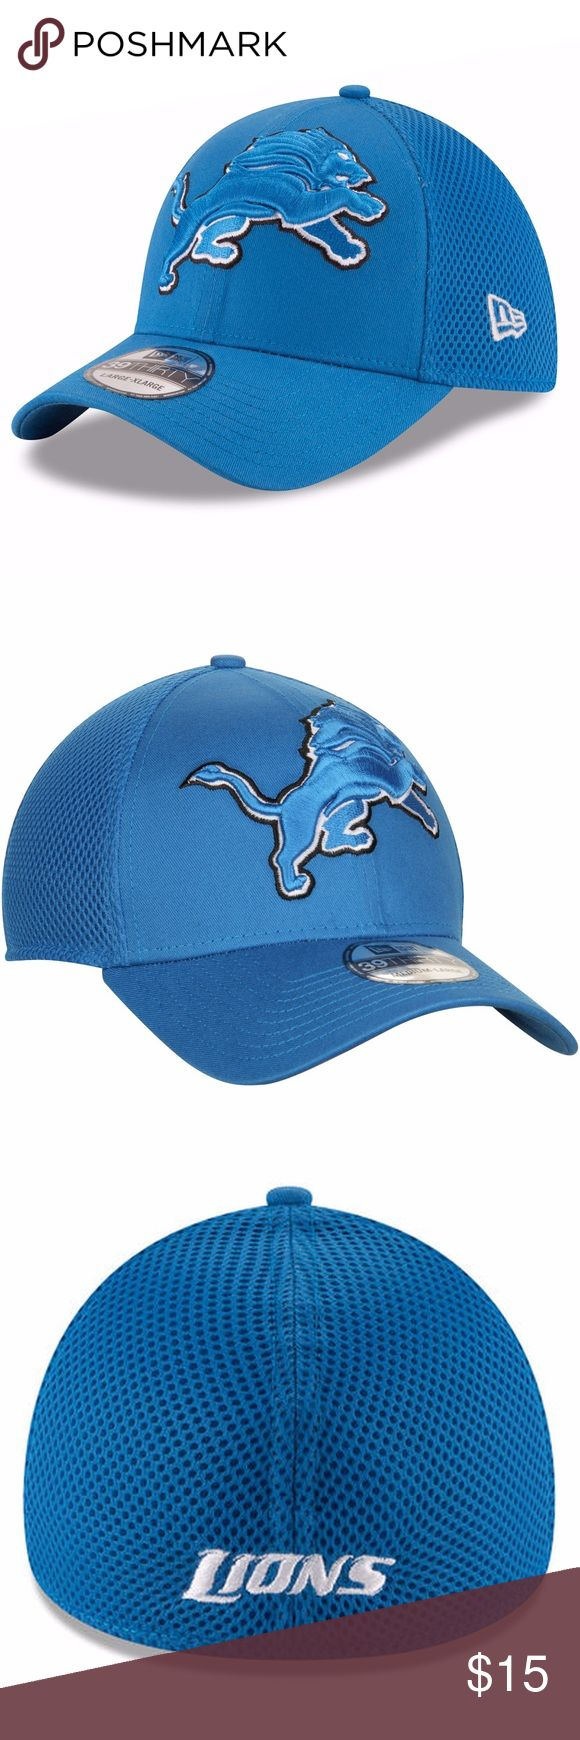 Detroit Lions New Era Blue Mega Team Neo 39THIRTY Brand New Officially Licensed with tags. This Detroit Lions New Era Blue Mega Team Neo 39THIRTY features bold embroidered Lions logo on the front and embroidered name on the back with stretch fit.  Med (7 1/4- 7 1/2)(55.8cm-59.6cm) New Era Accessories Hats